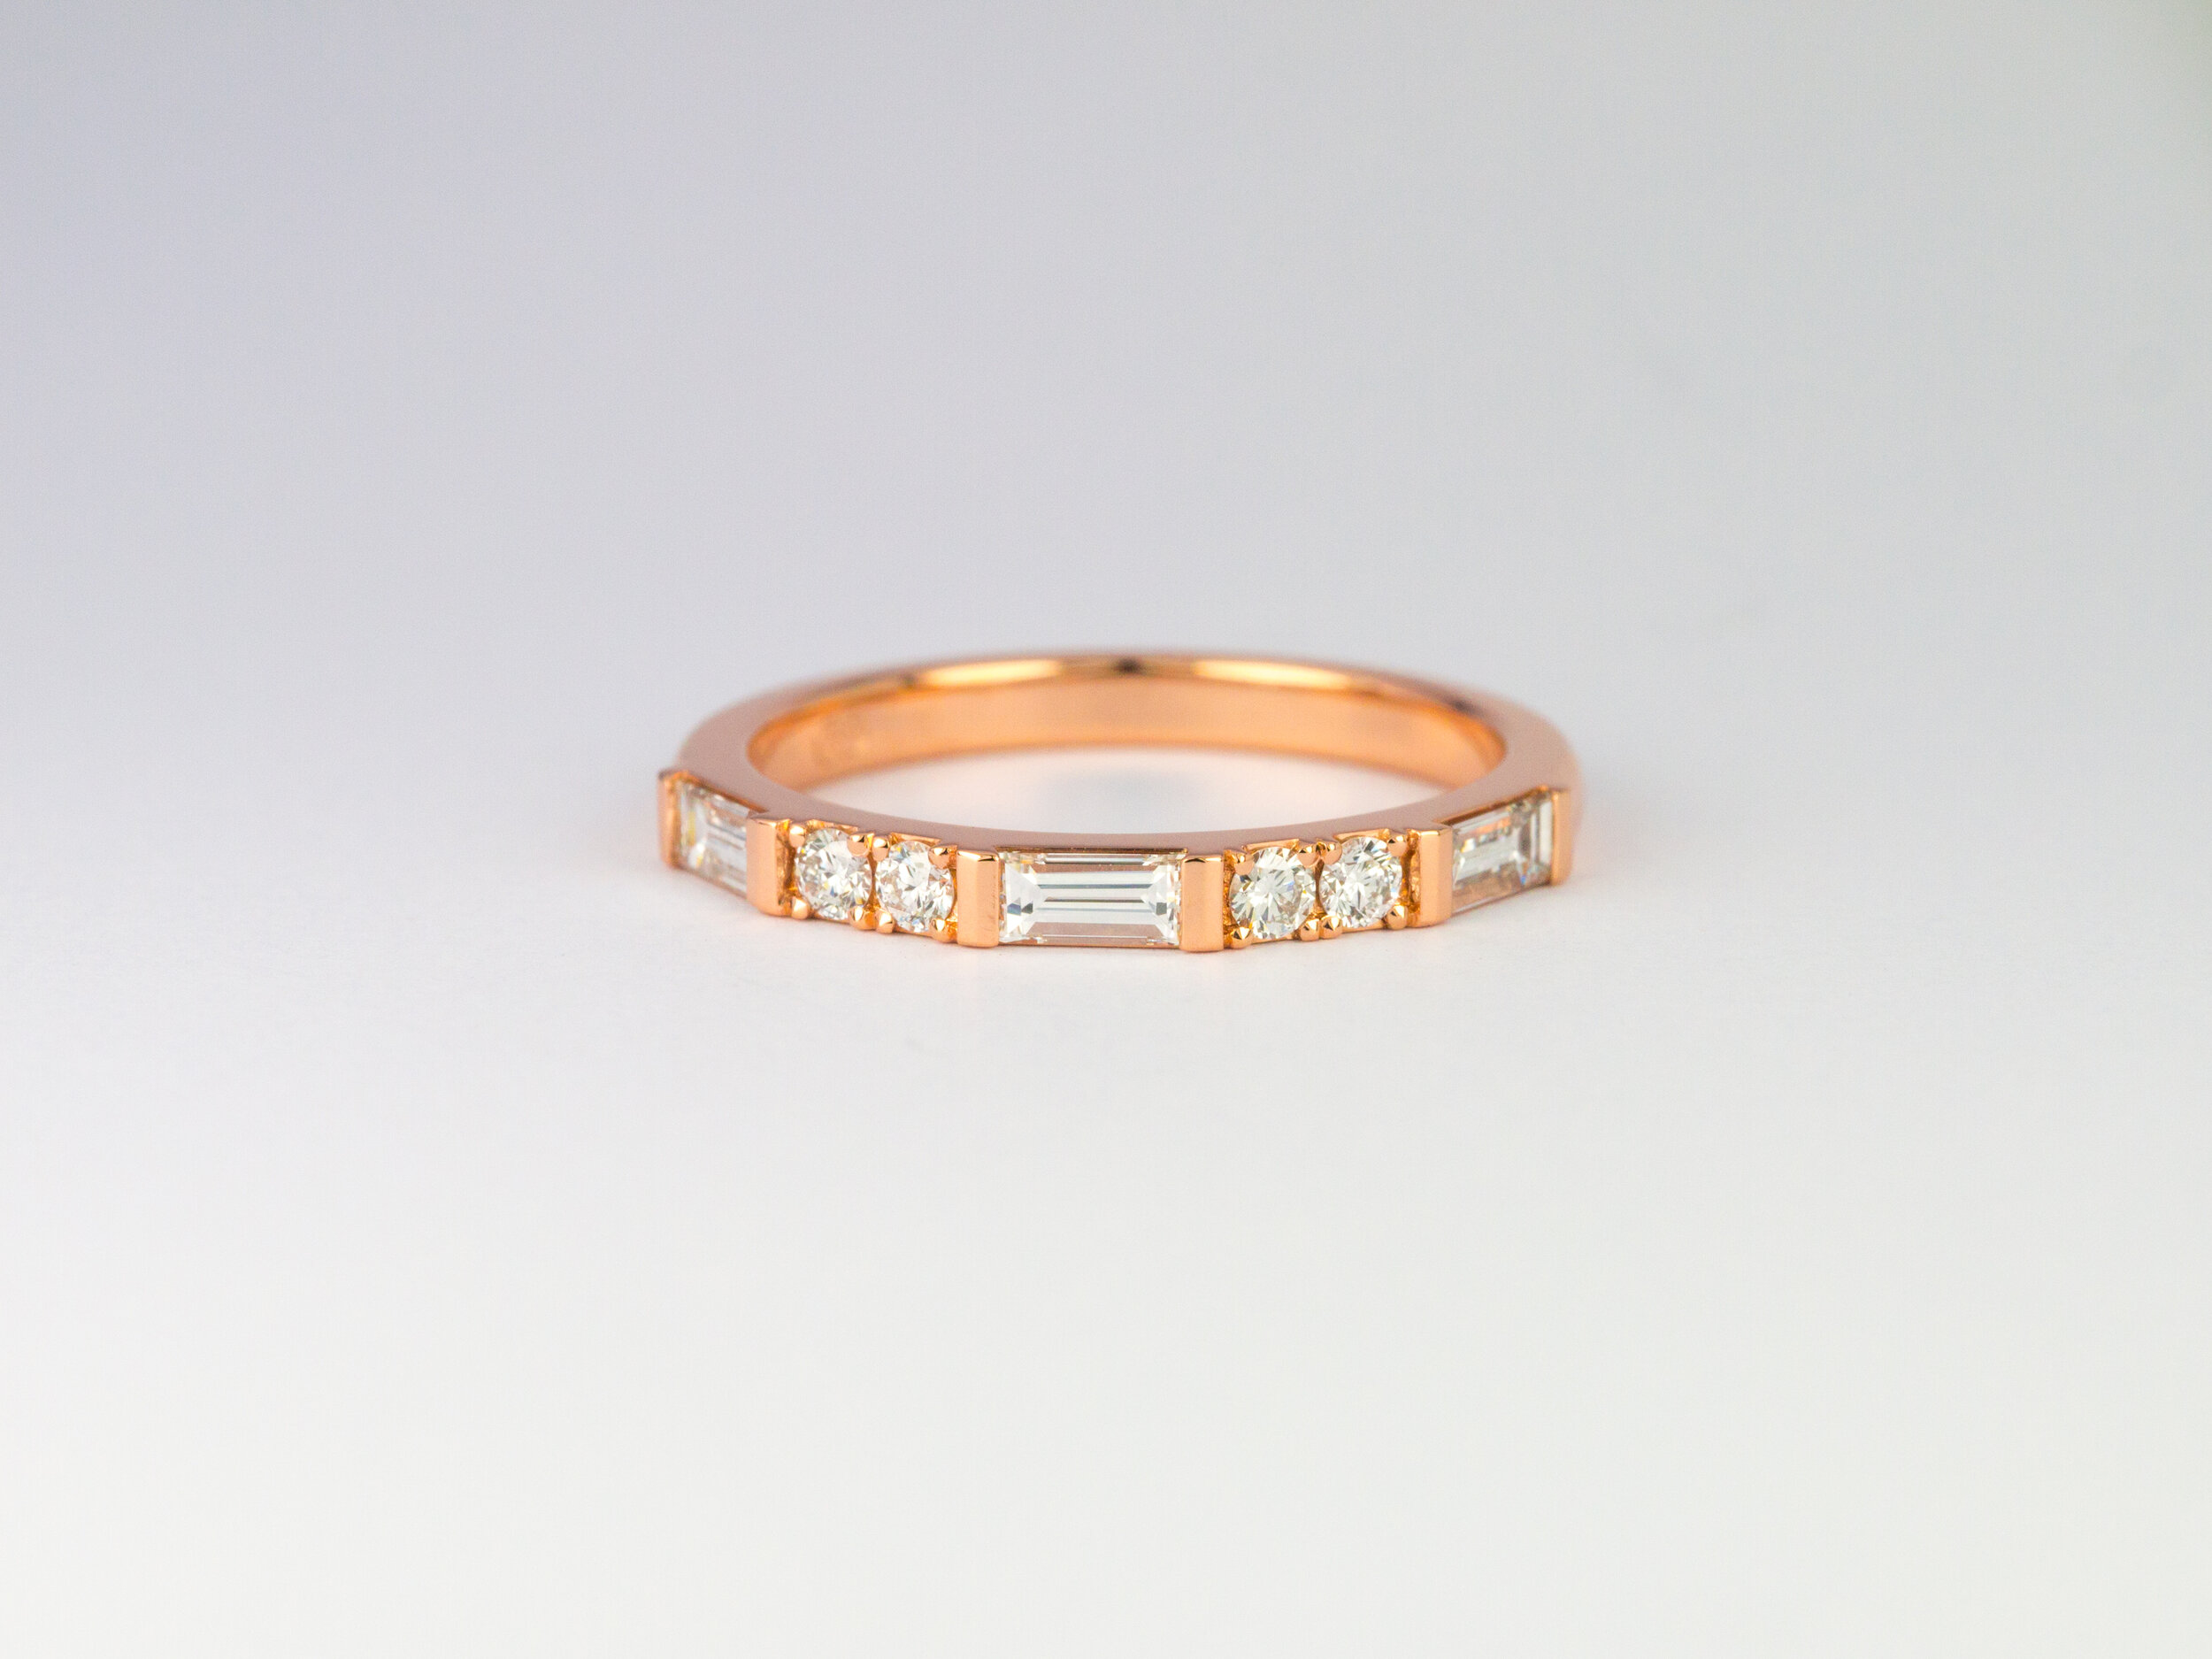 Rose gold baguette diamond and round brilliant cut diamond ring